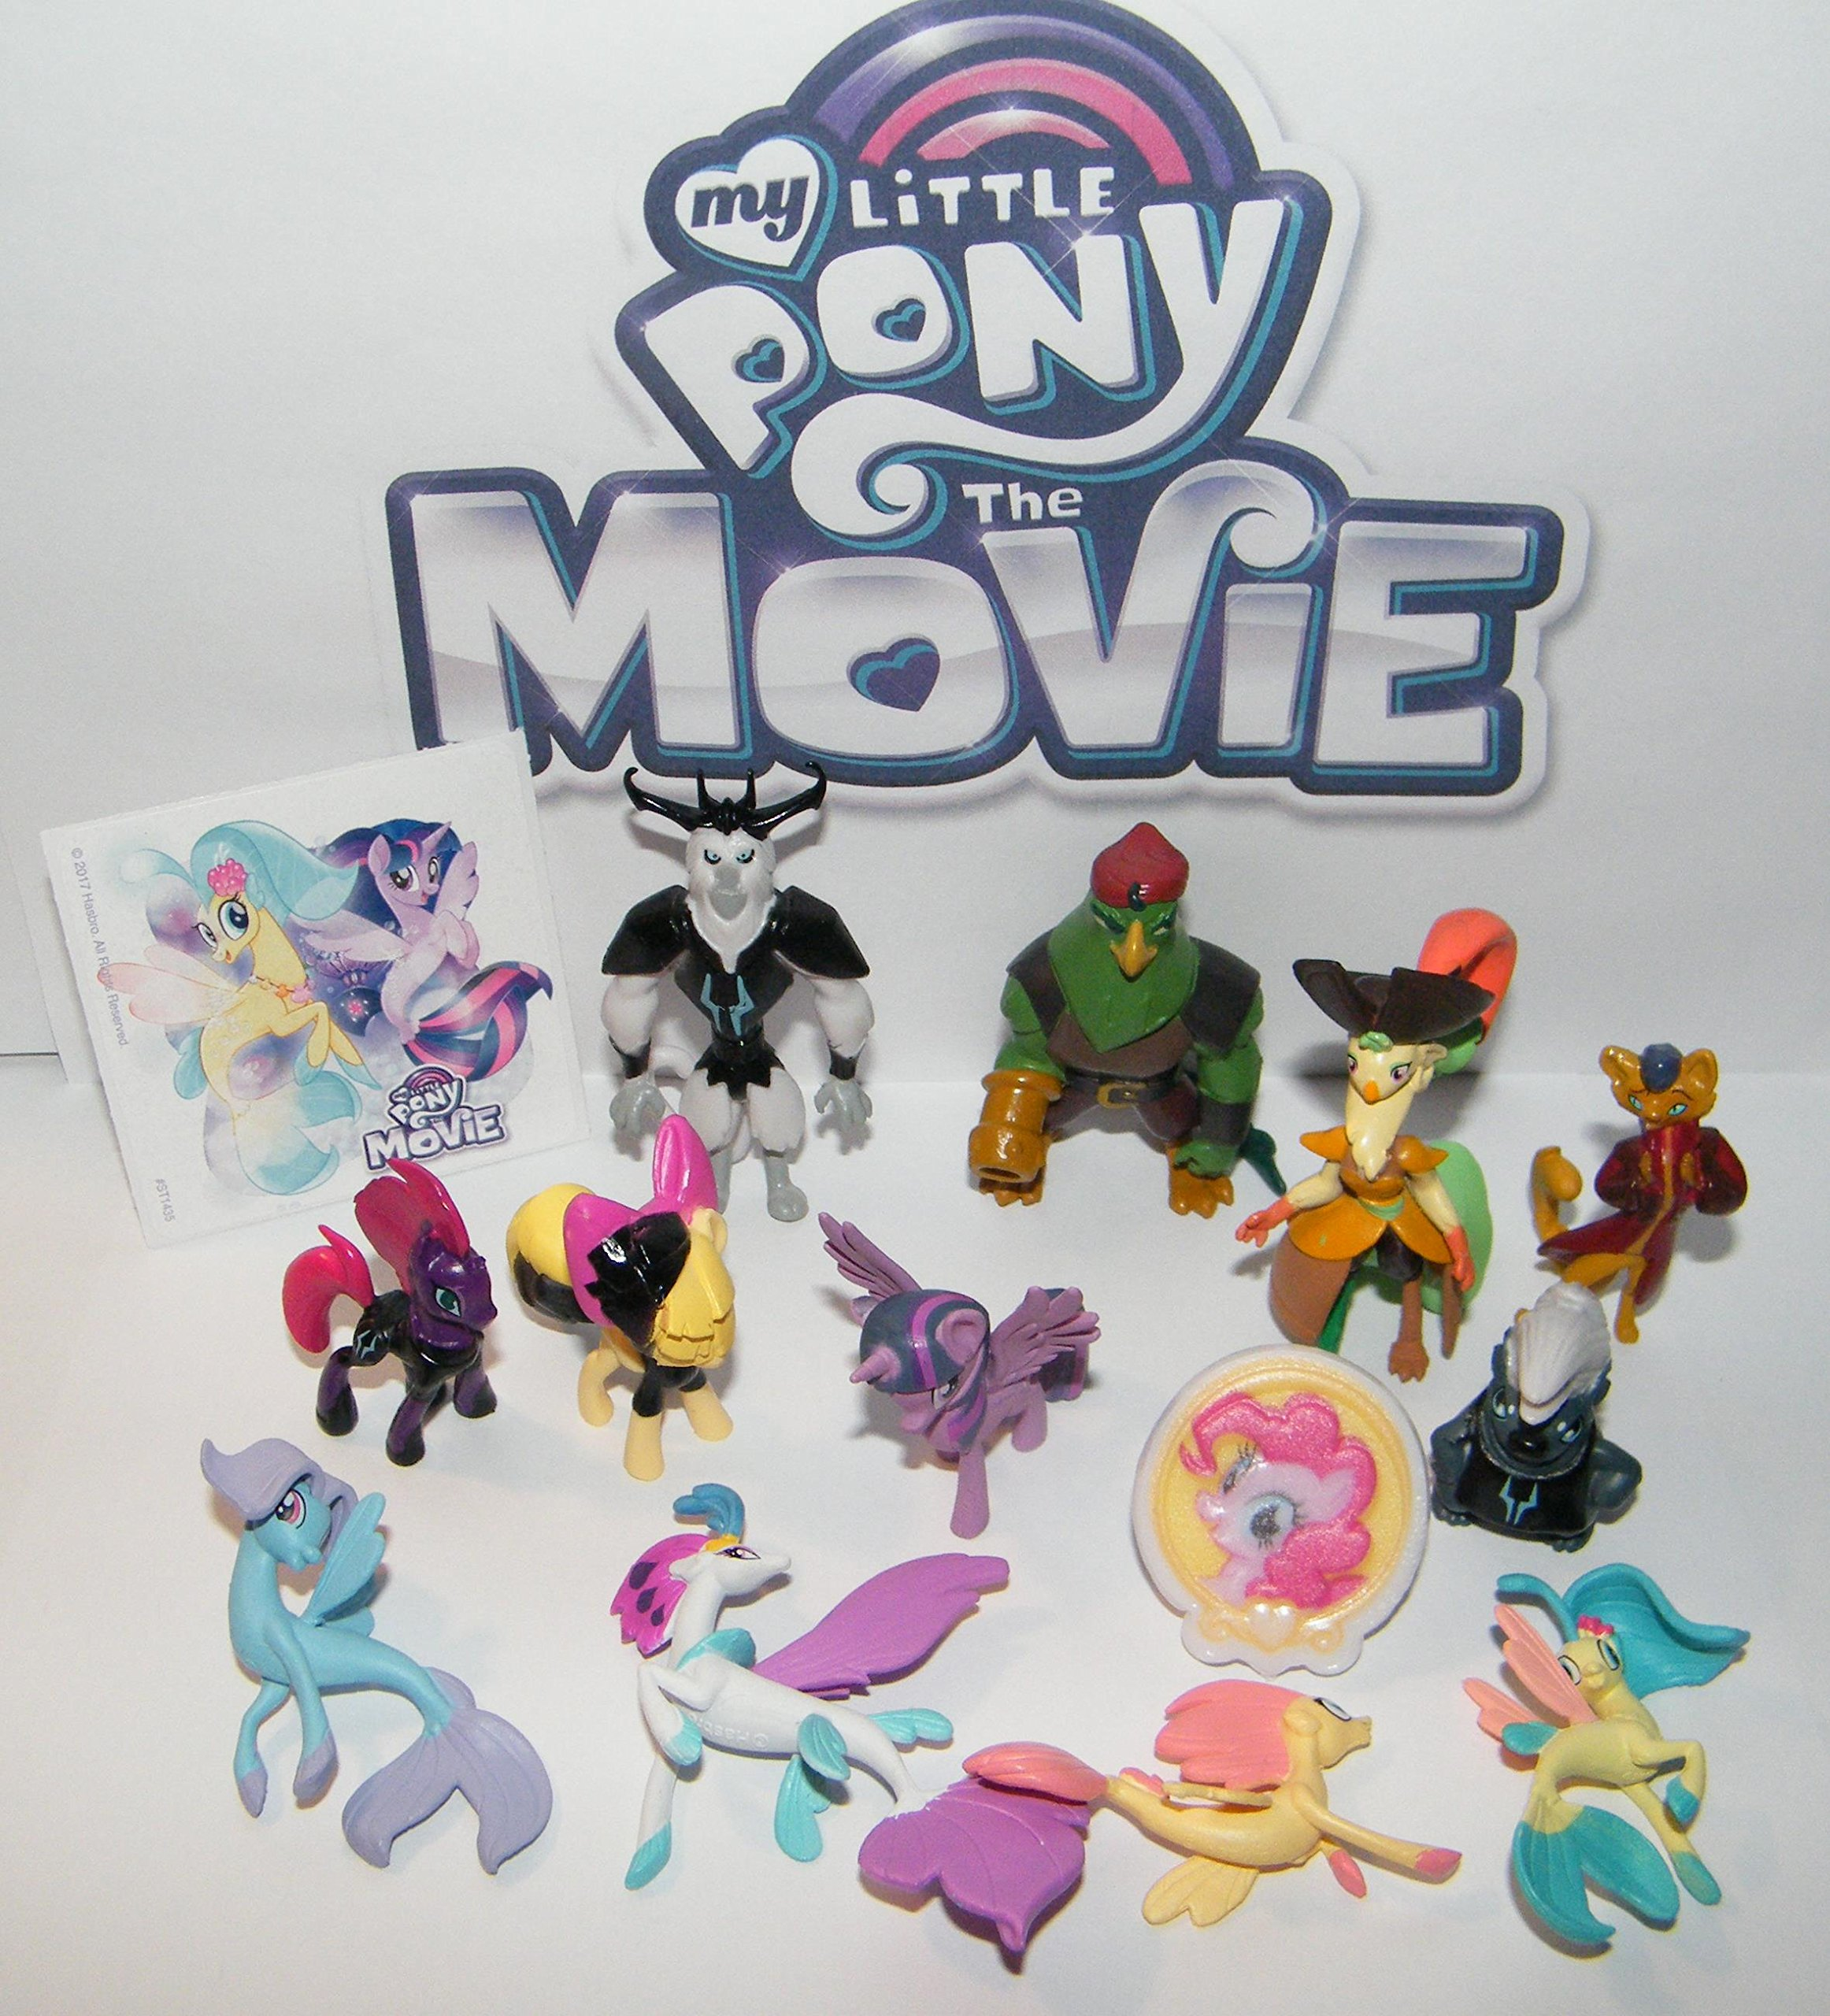 My Little Pony The Movie Deluxe Party Favors Goody Bag Fillers Set of 14 with Figures, Special Sticker and ToyRing Featuring Twilight, Pirates, Seaponies, a Cat and More!